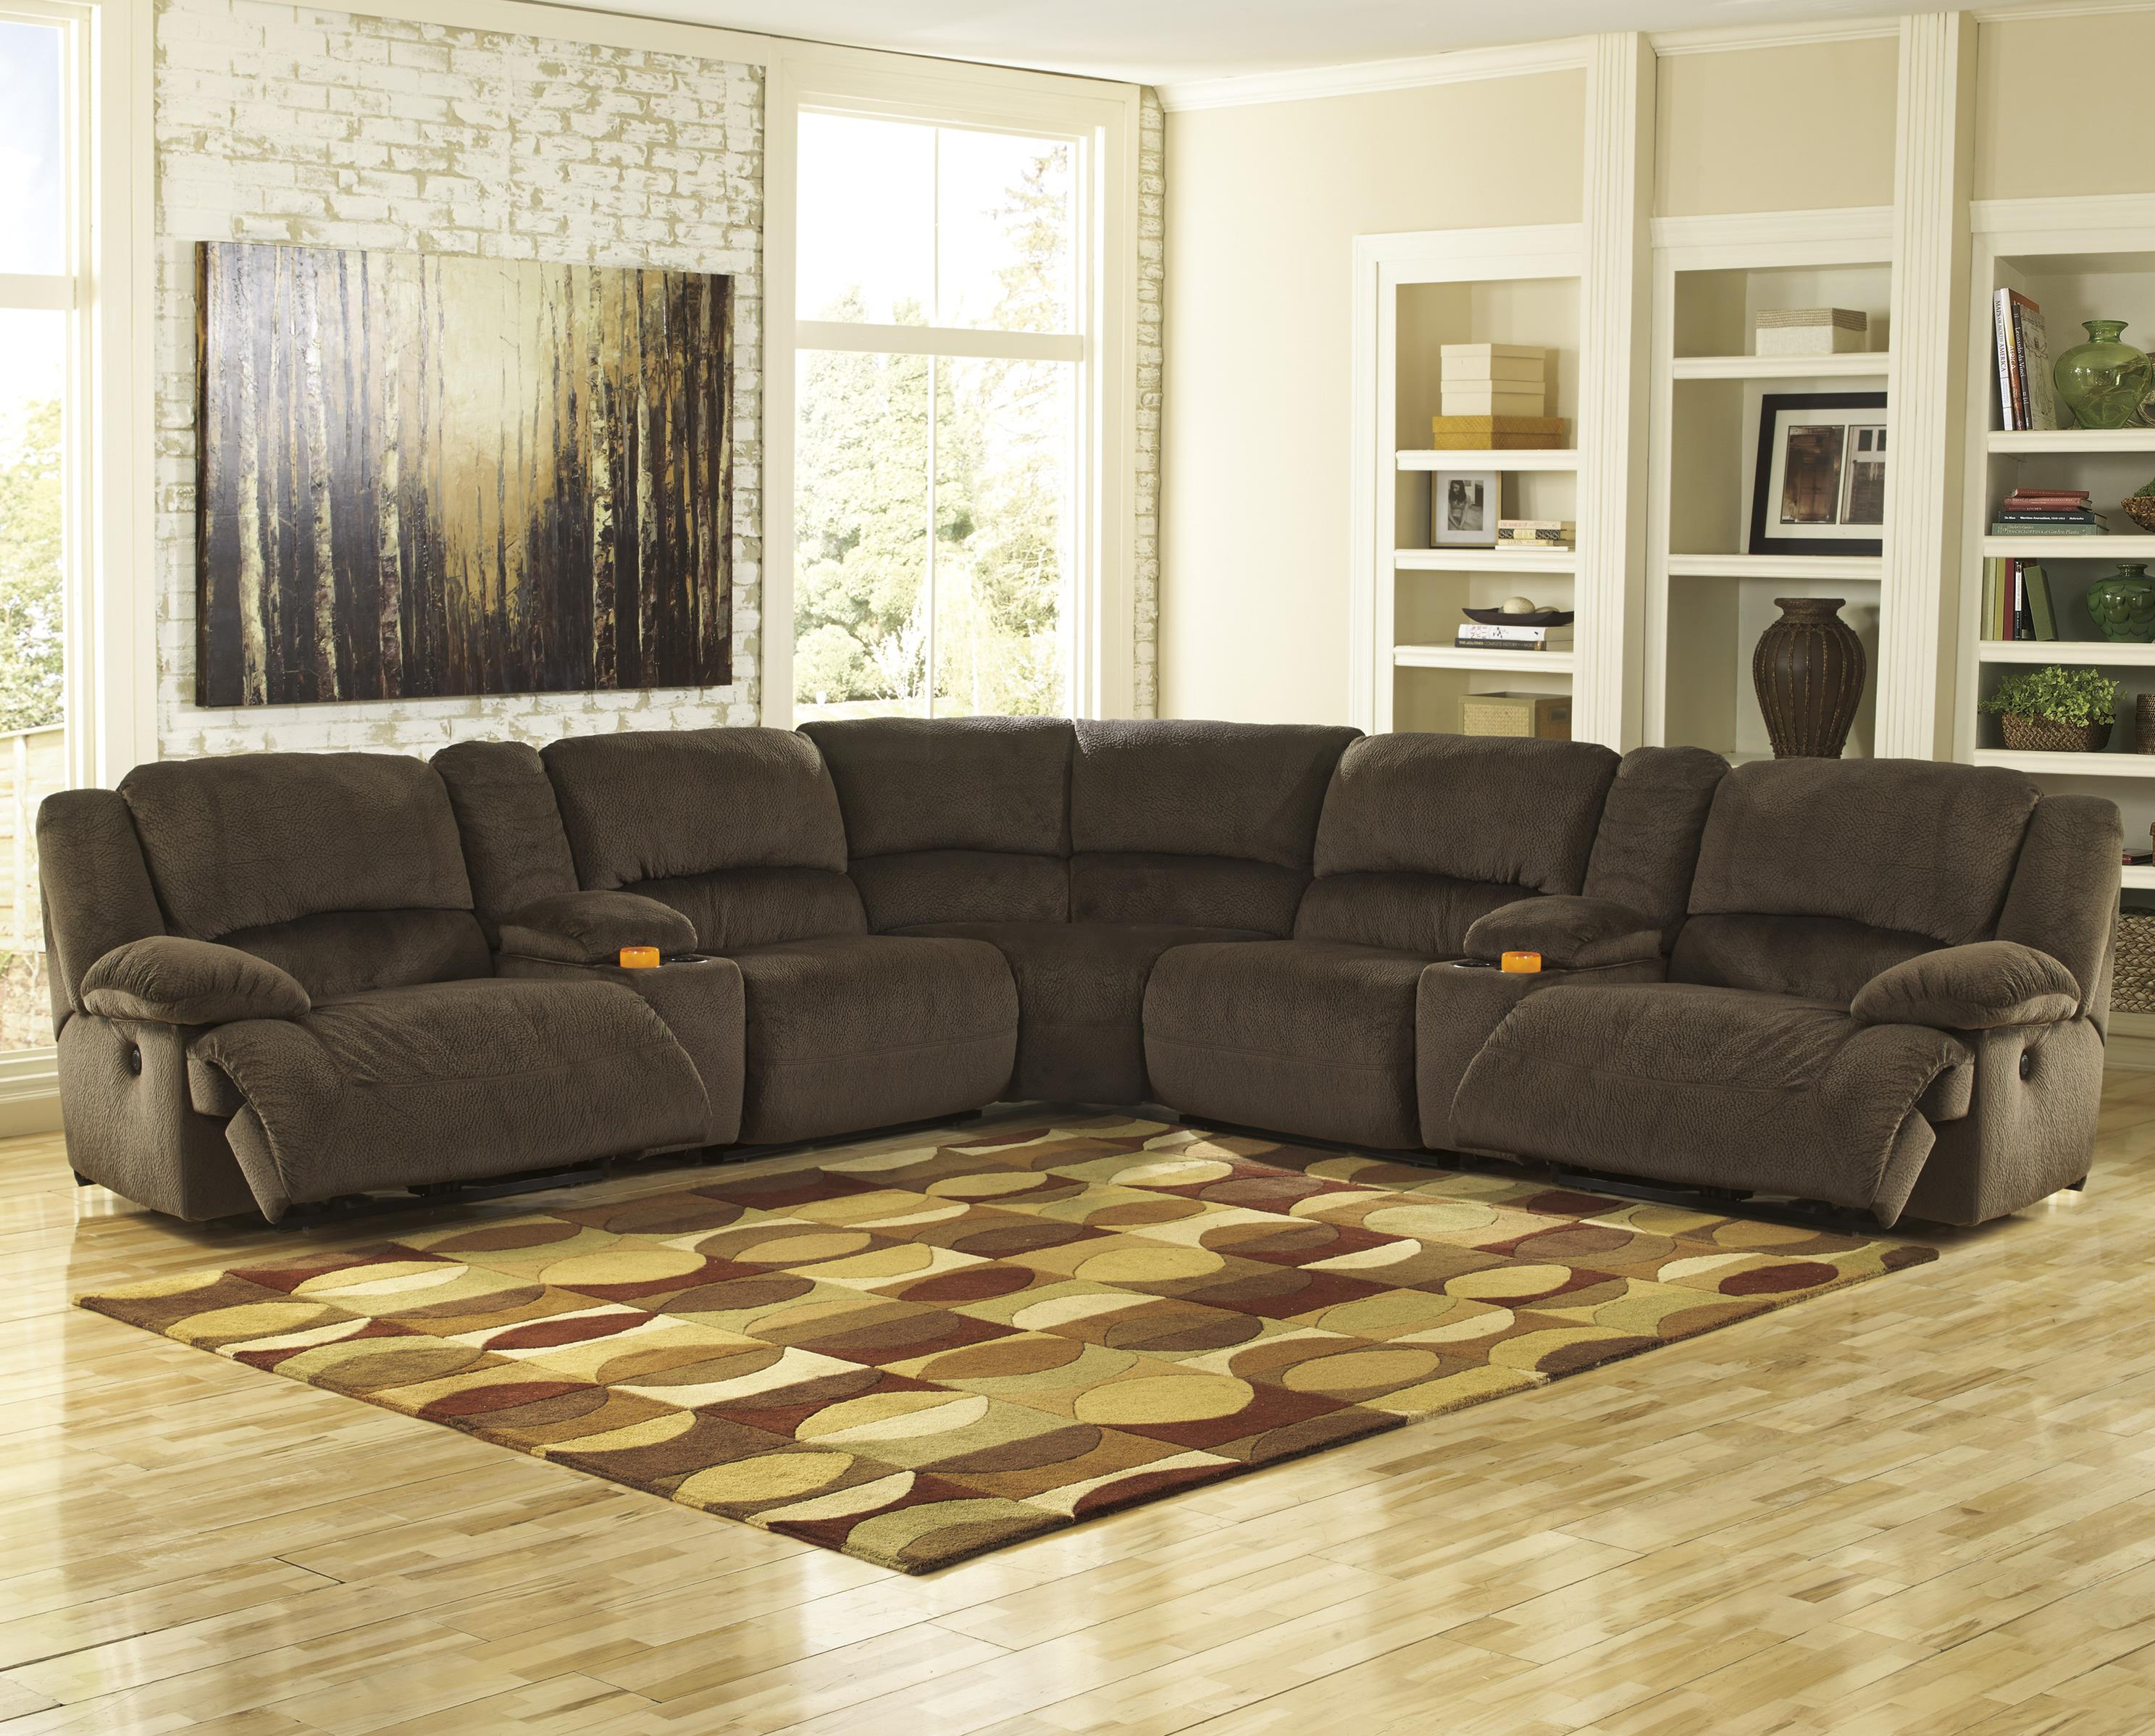 Signature Design by Ashley Toletta - Chocolate Sectional w/ Consoles & Armless Recliners - Item Number: 5670140+2x57+2x19+77+41